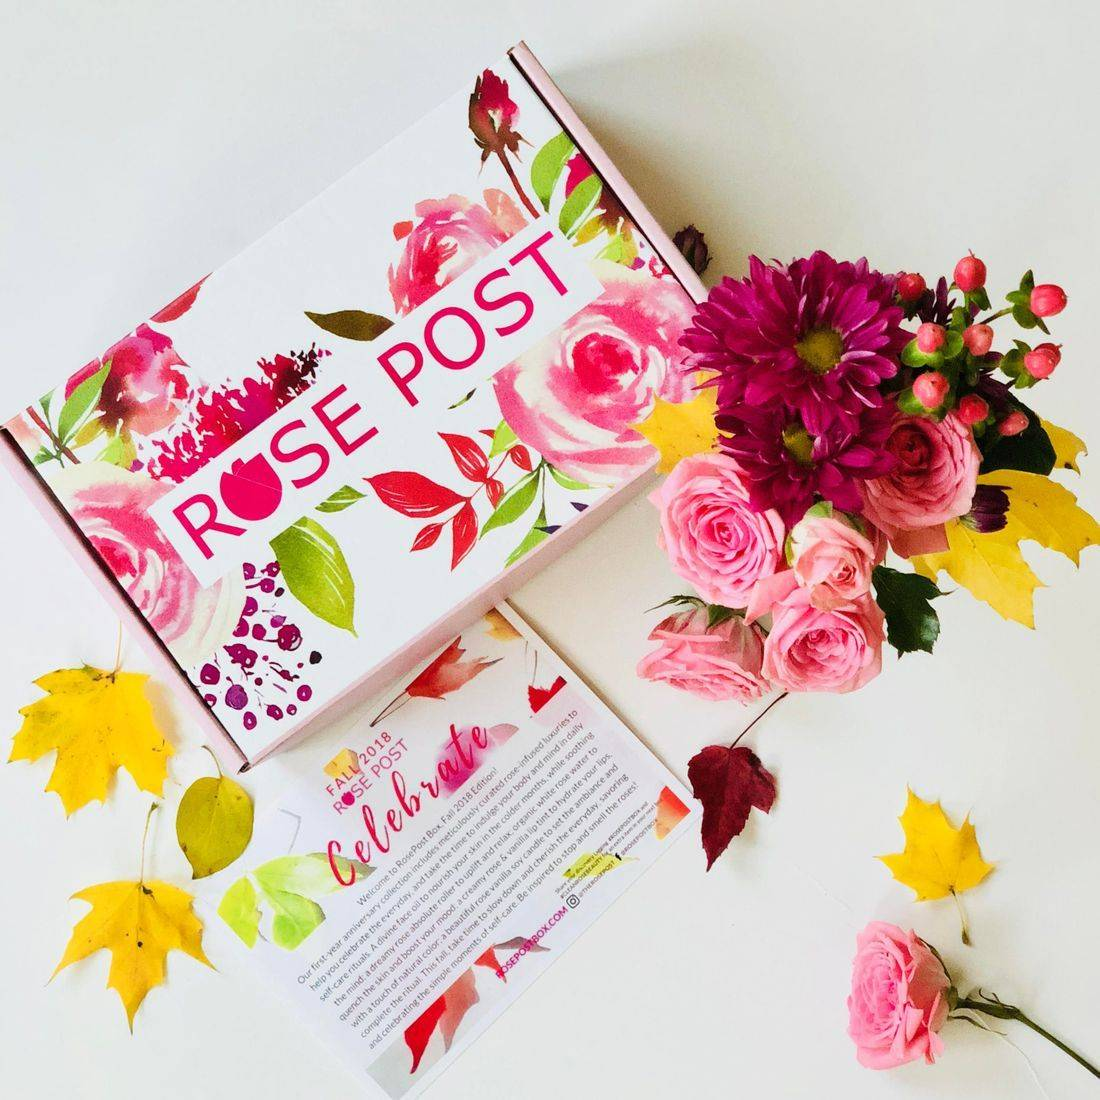 rosepost box, best in rose-infused beauty, best rose water, organic rose-infused skincare, eco subscription boxes